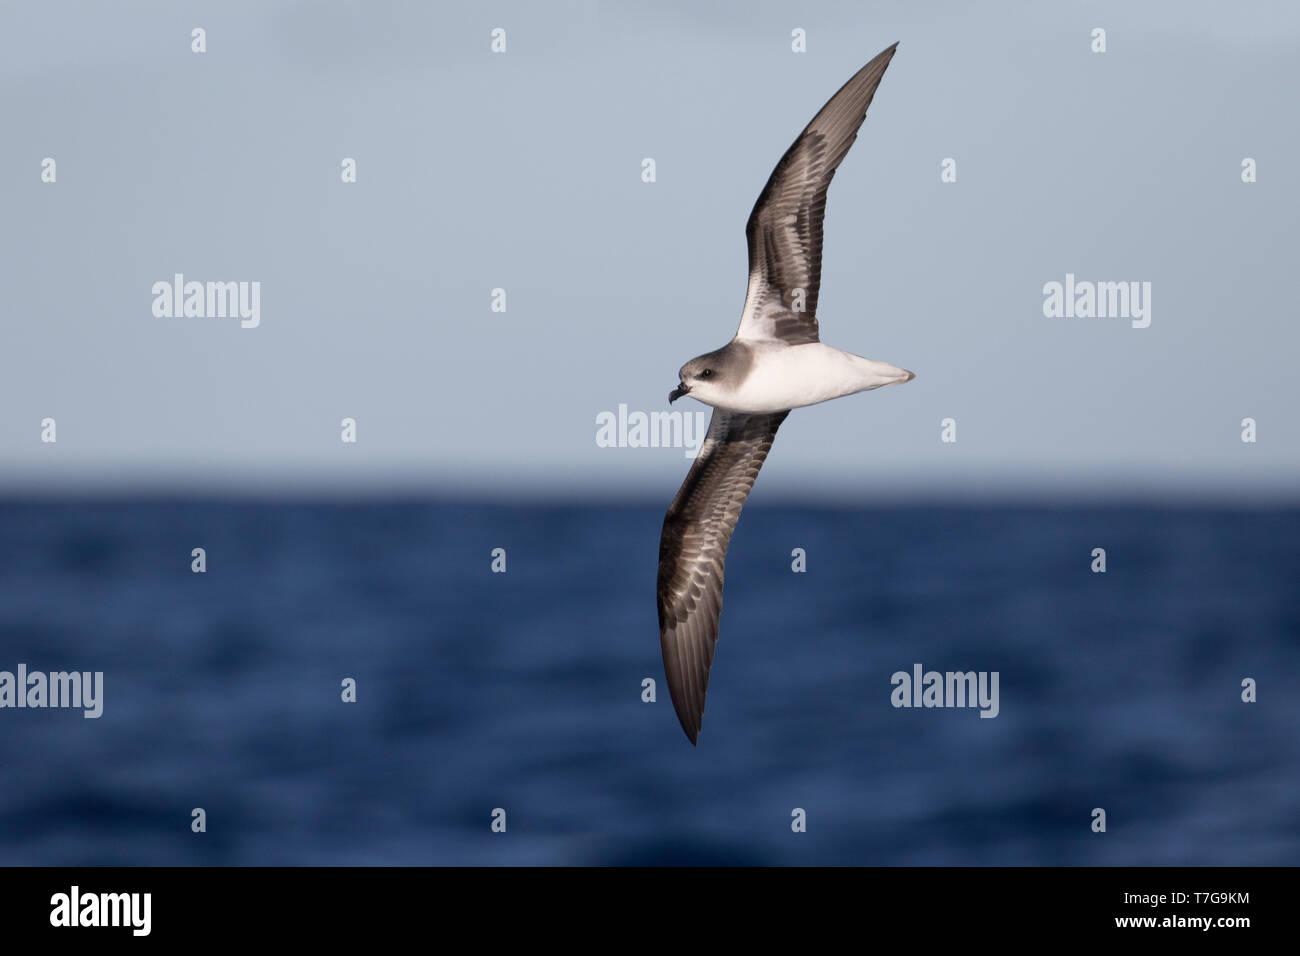 Adult Zino's Petrel or freira (Pterodroma madeira) off Madeira. Flying above the Atlantic ocean. Seen from the side, showing under wing pattern. Stock Photo